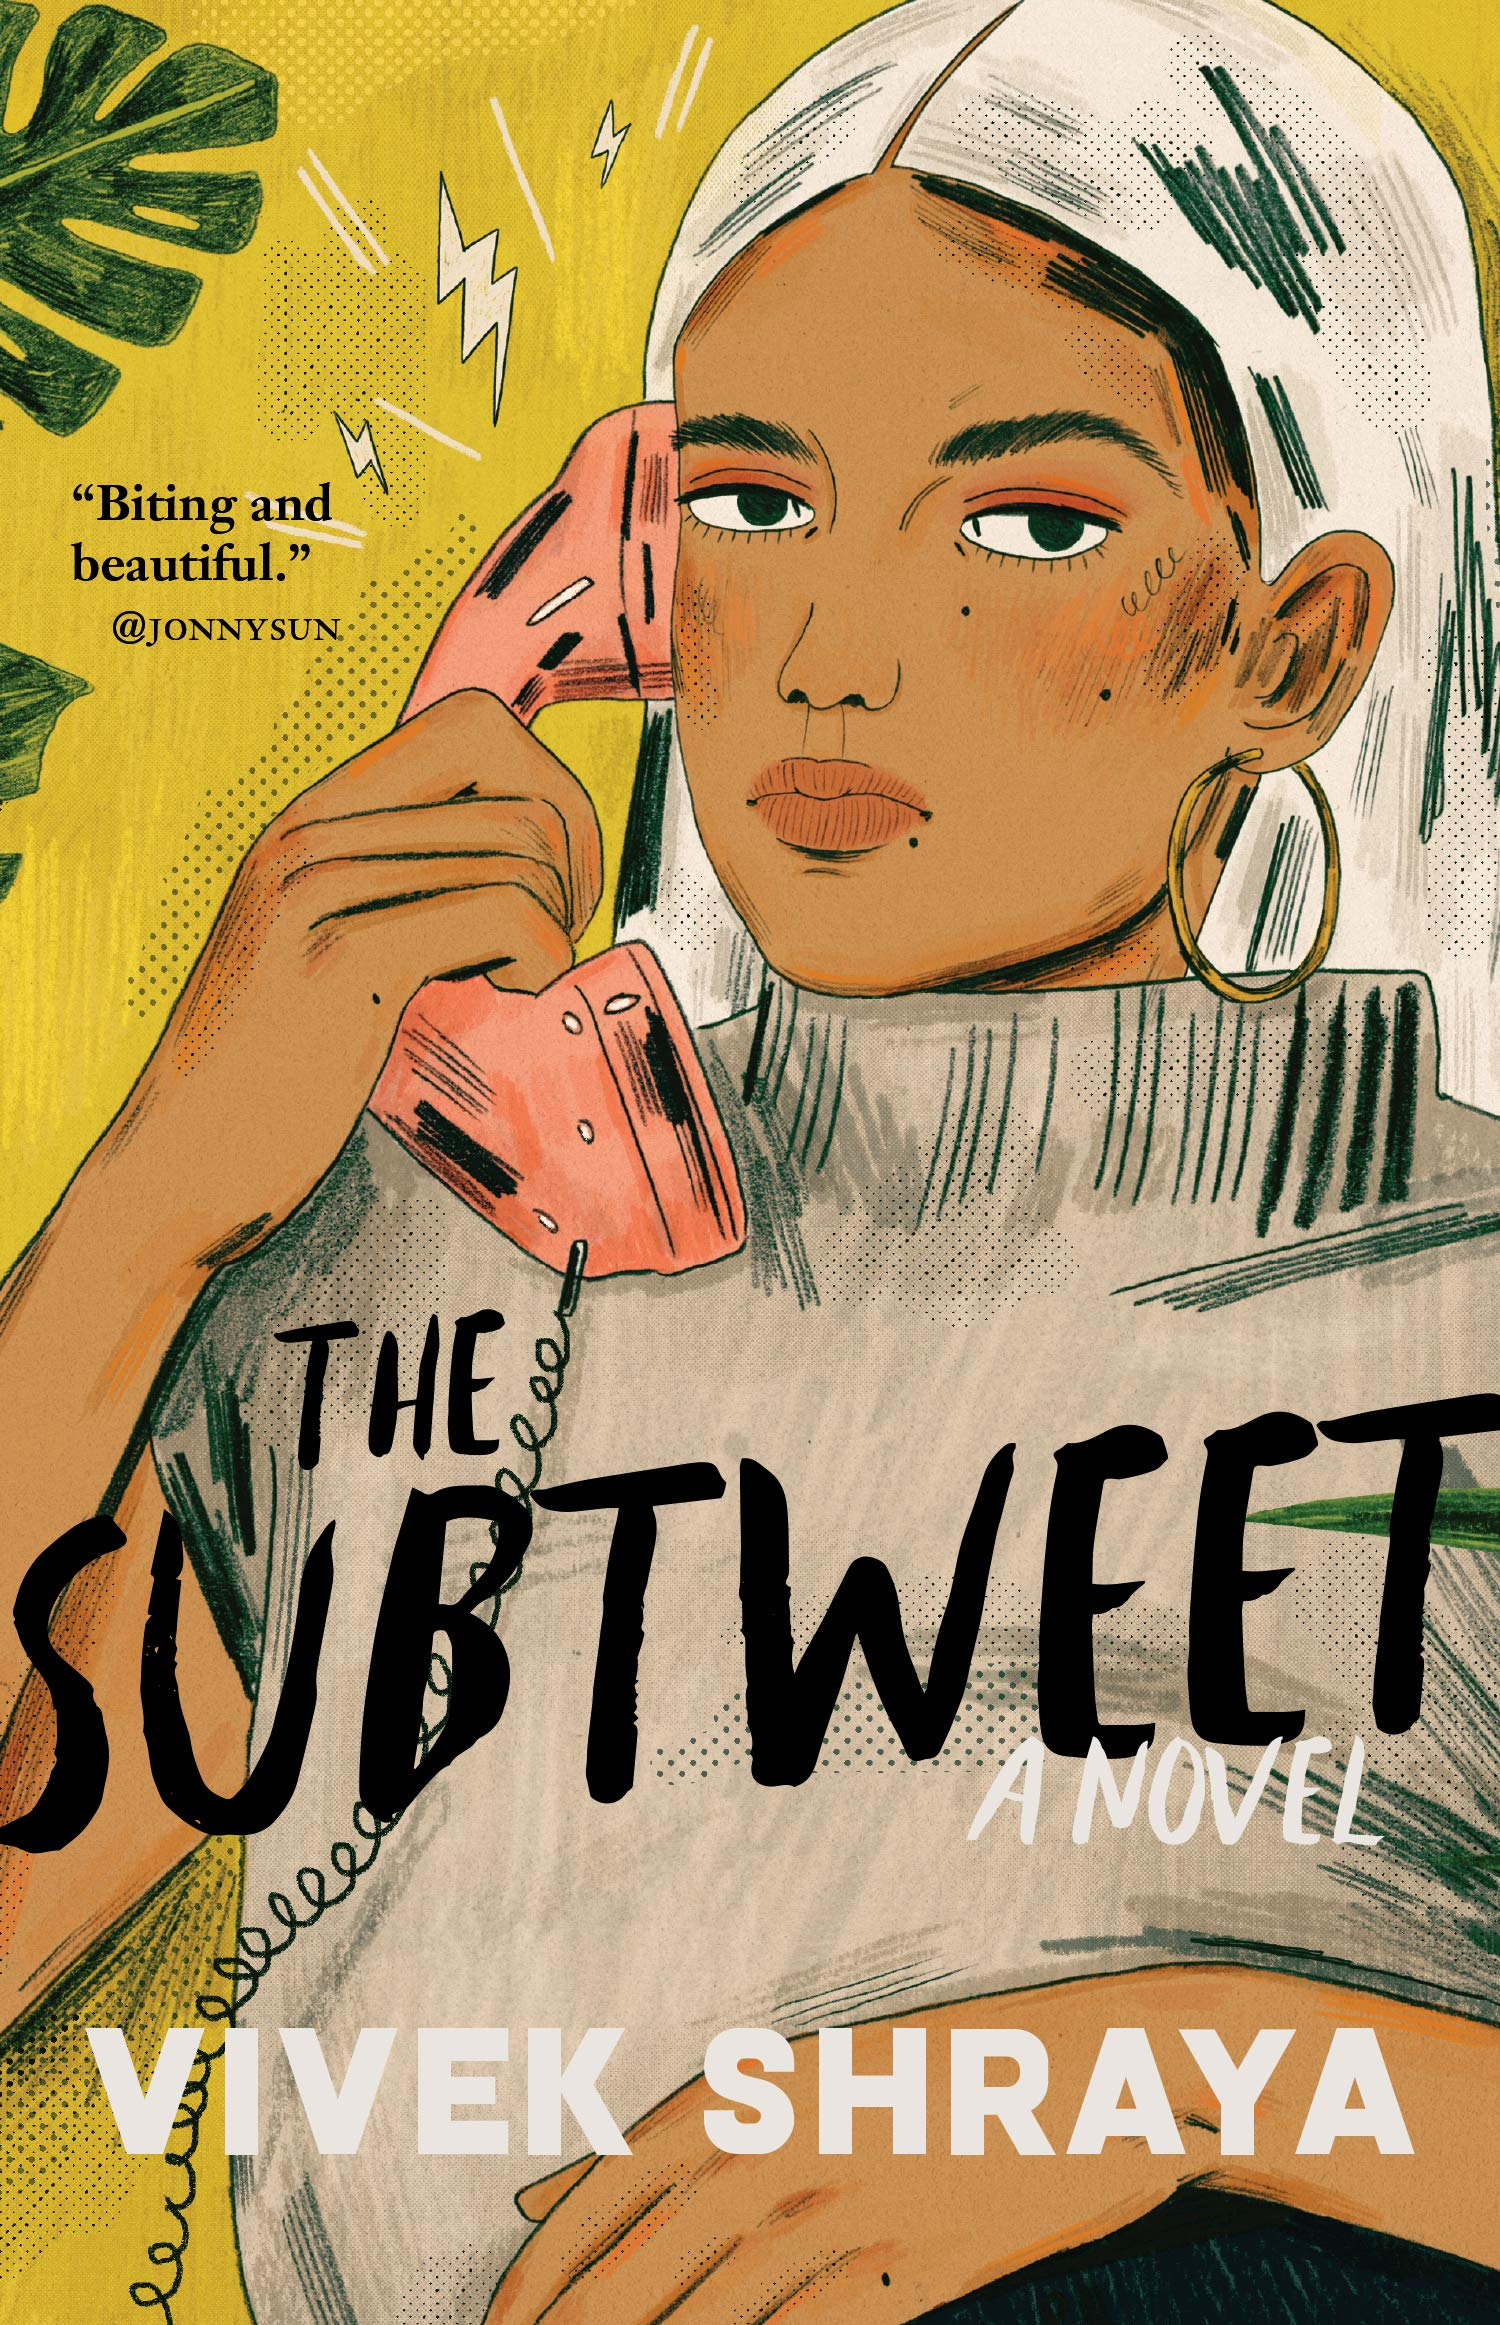 The Subtweet: A Novel: Shraya, Vivek: 9781770415256: Amazon.com: Books